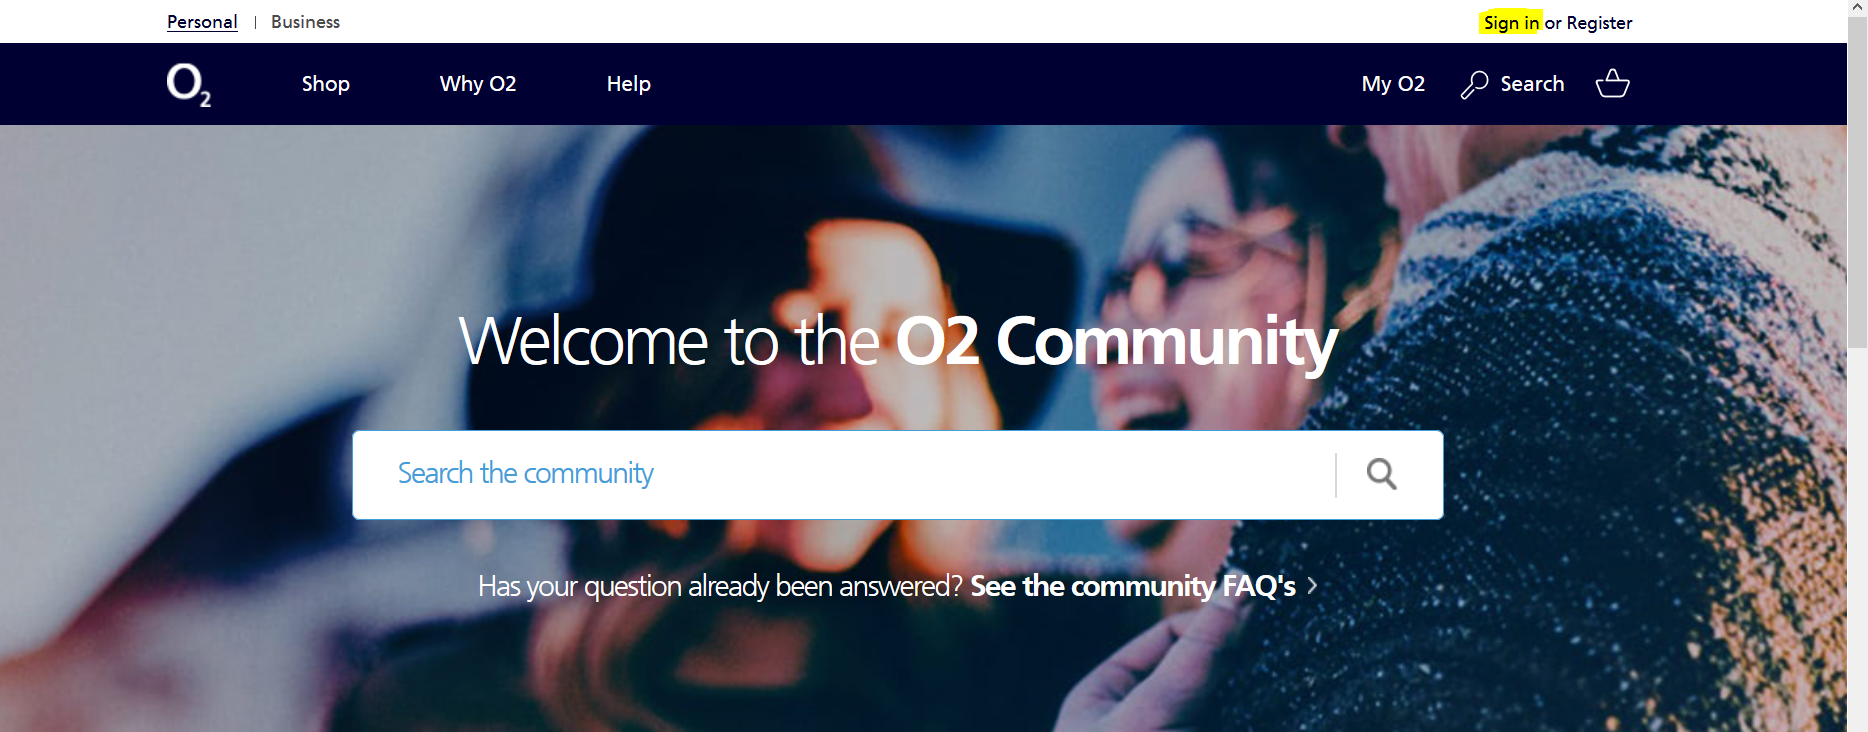 O2 header sign in.PNG